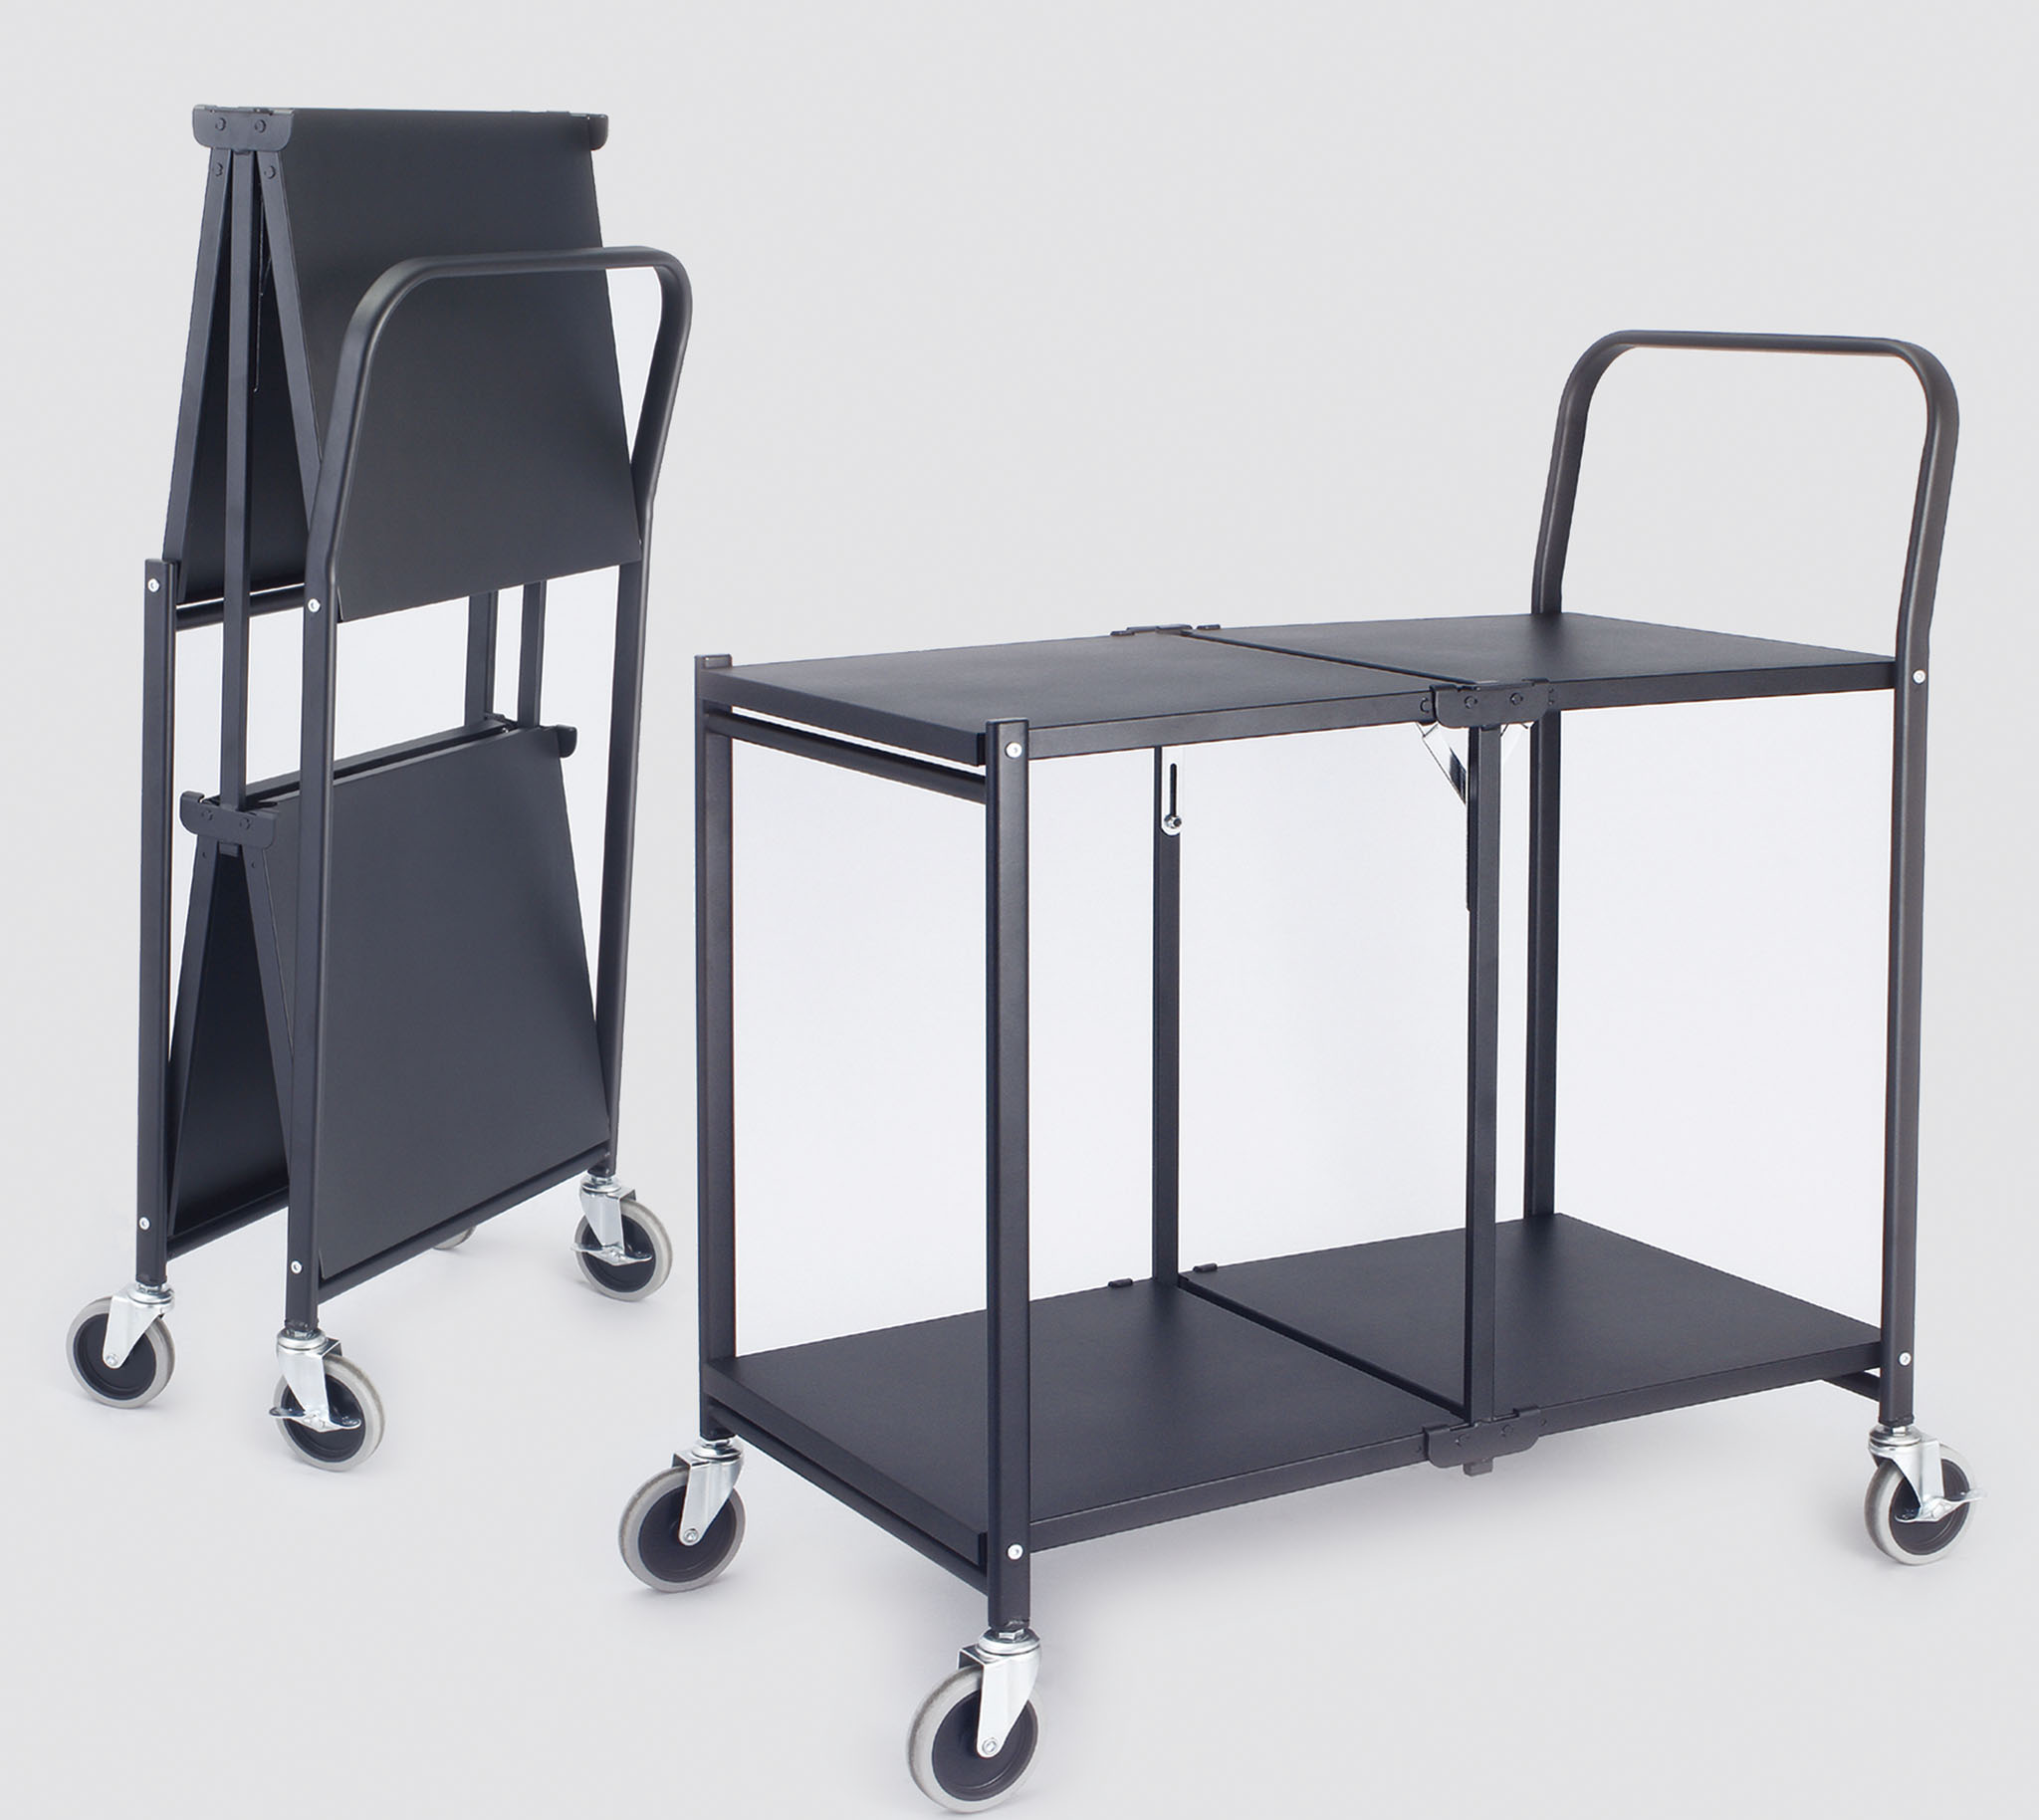 New Folding Shelf Trolley